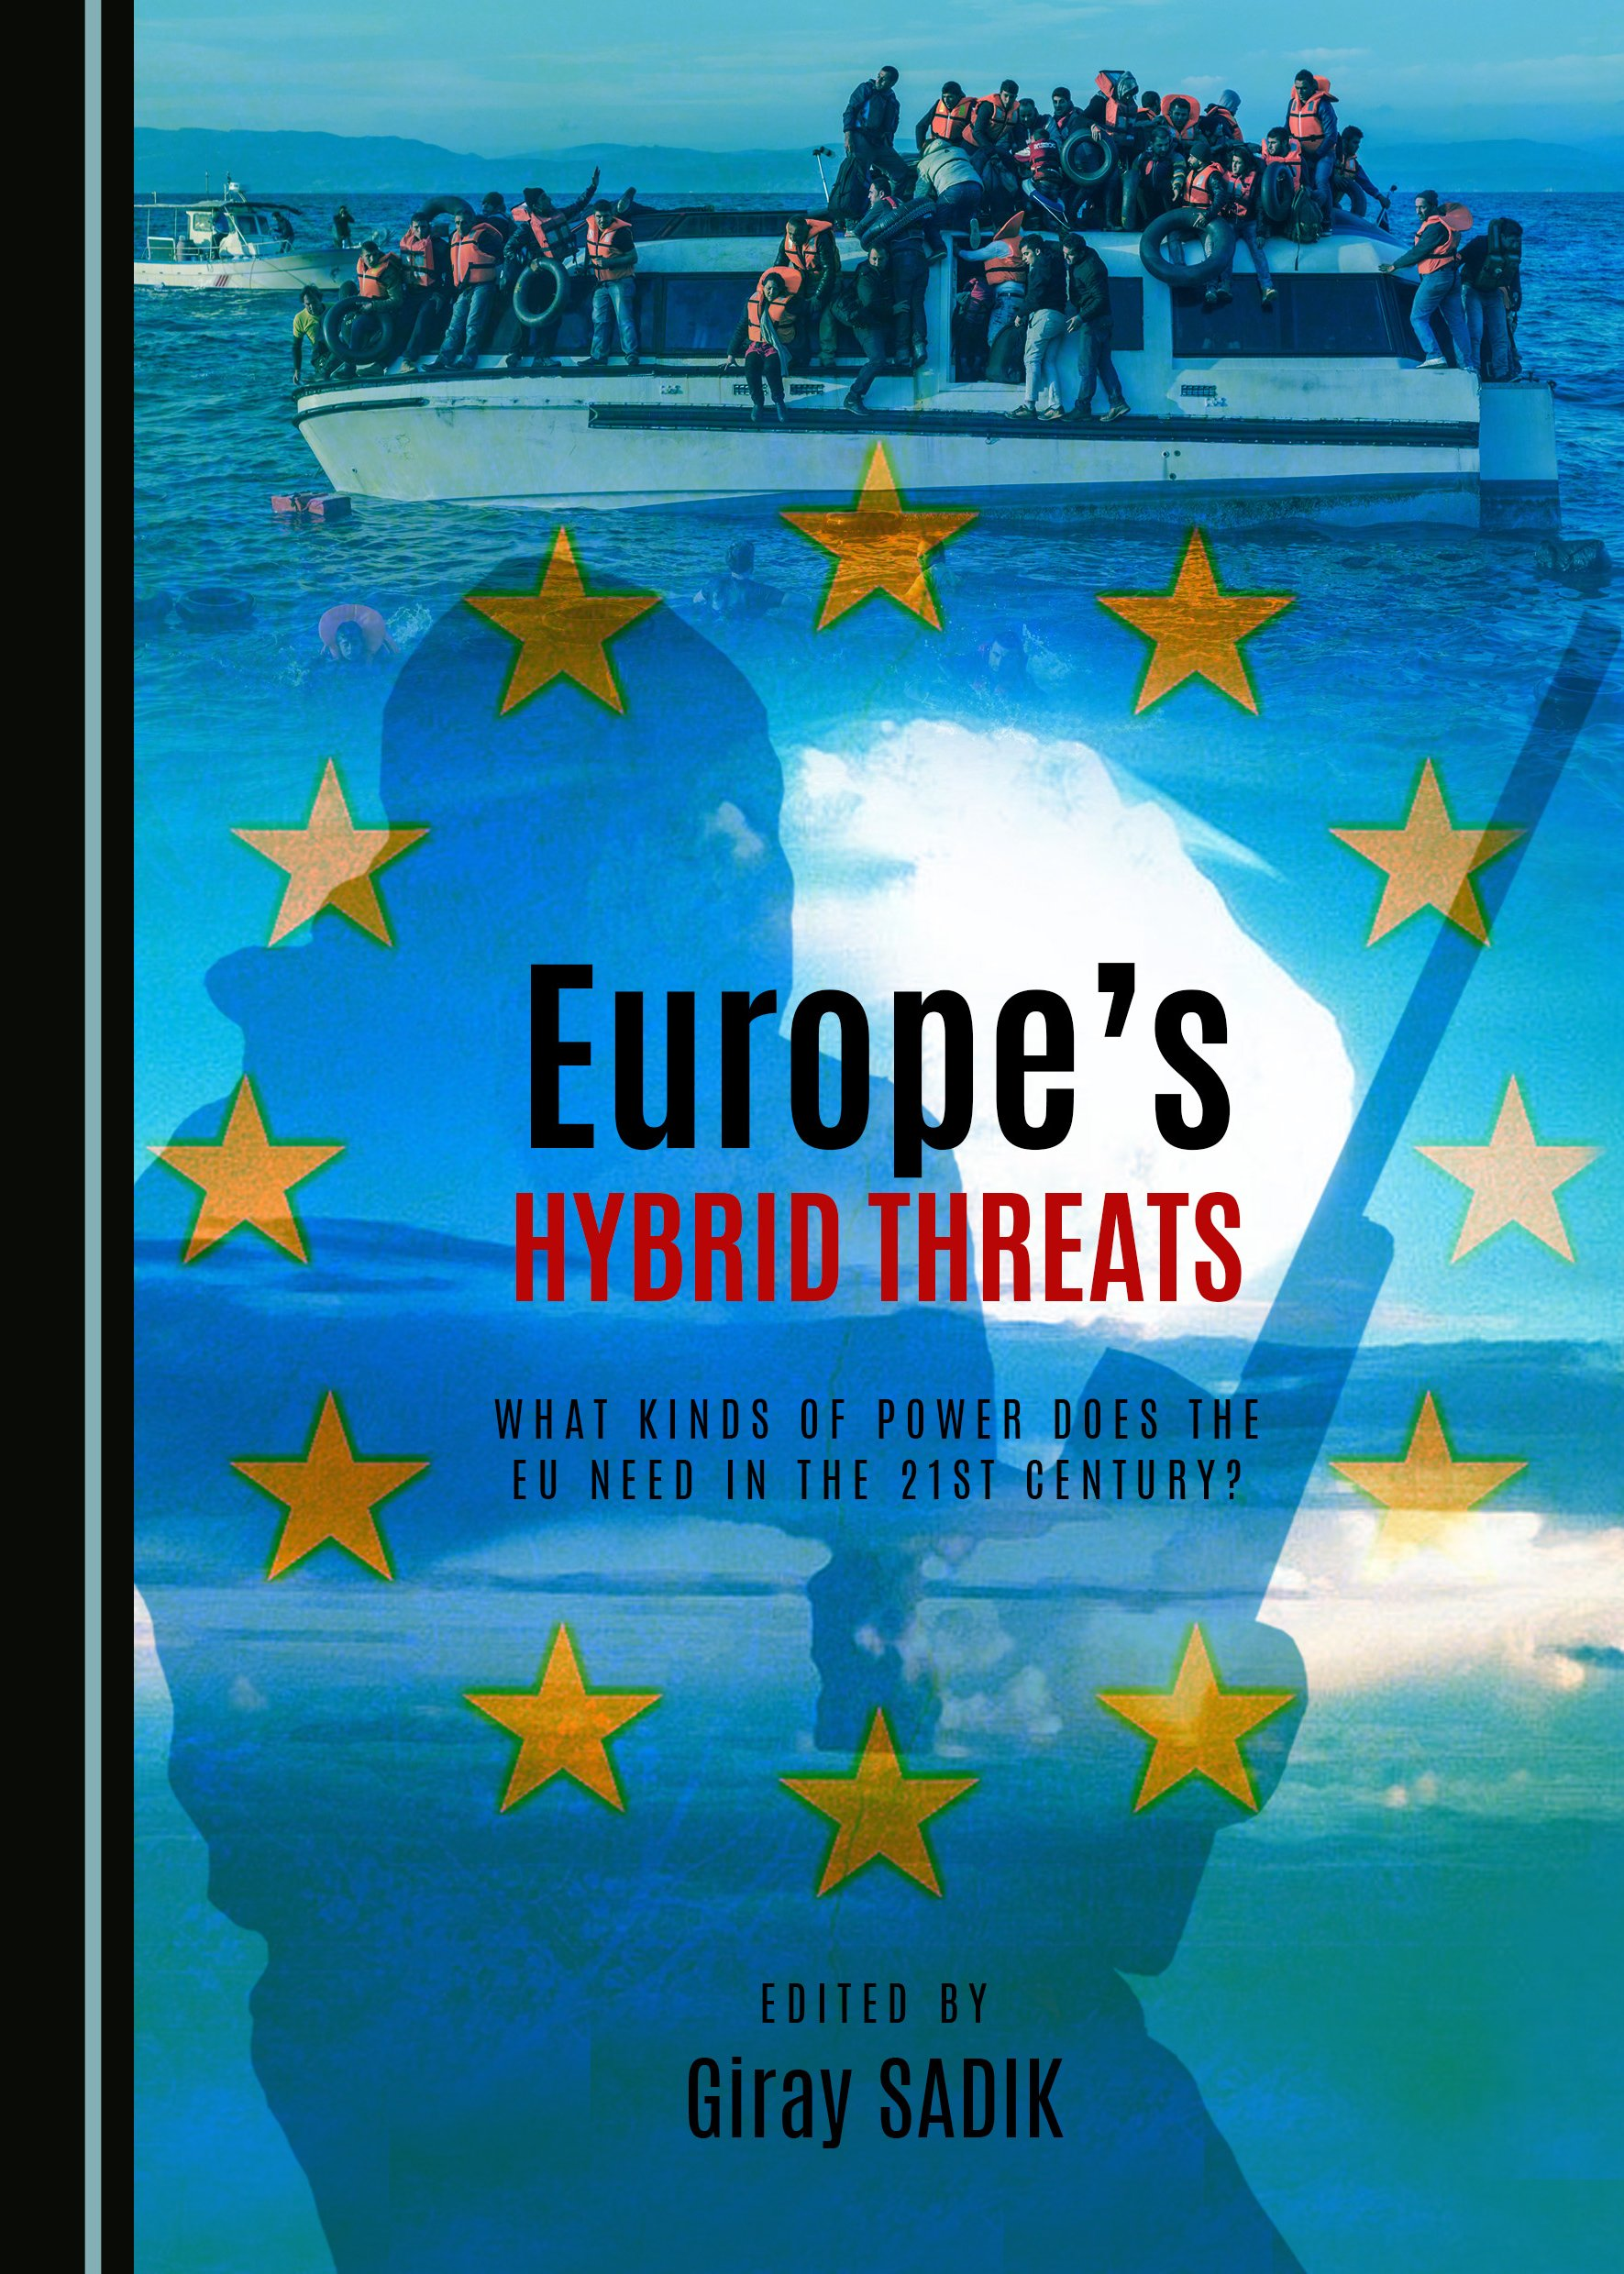 Europe's Hybrid Threats: What Kinds of Power Does the EU Need in the 21st Century?